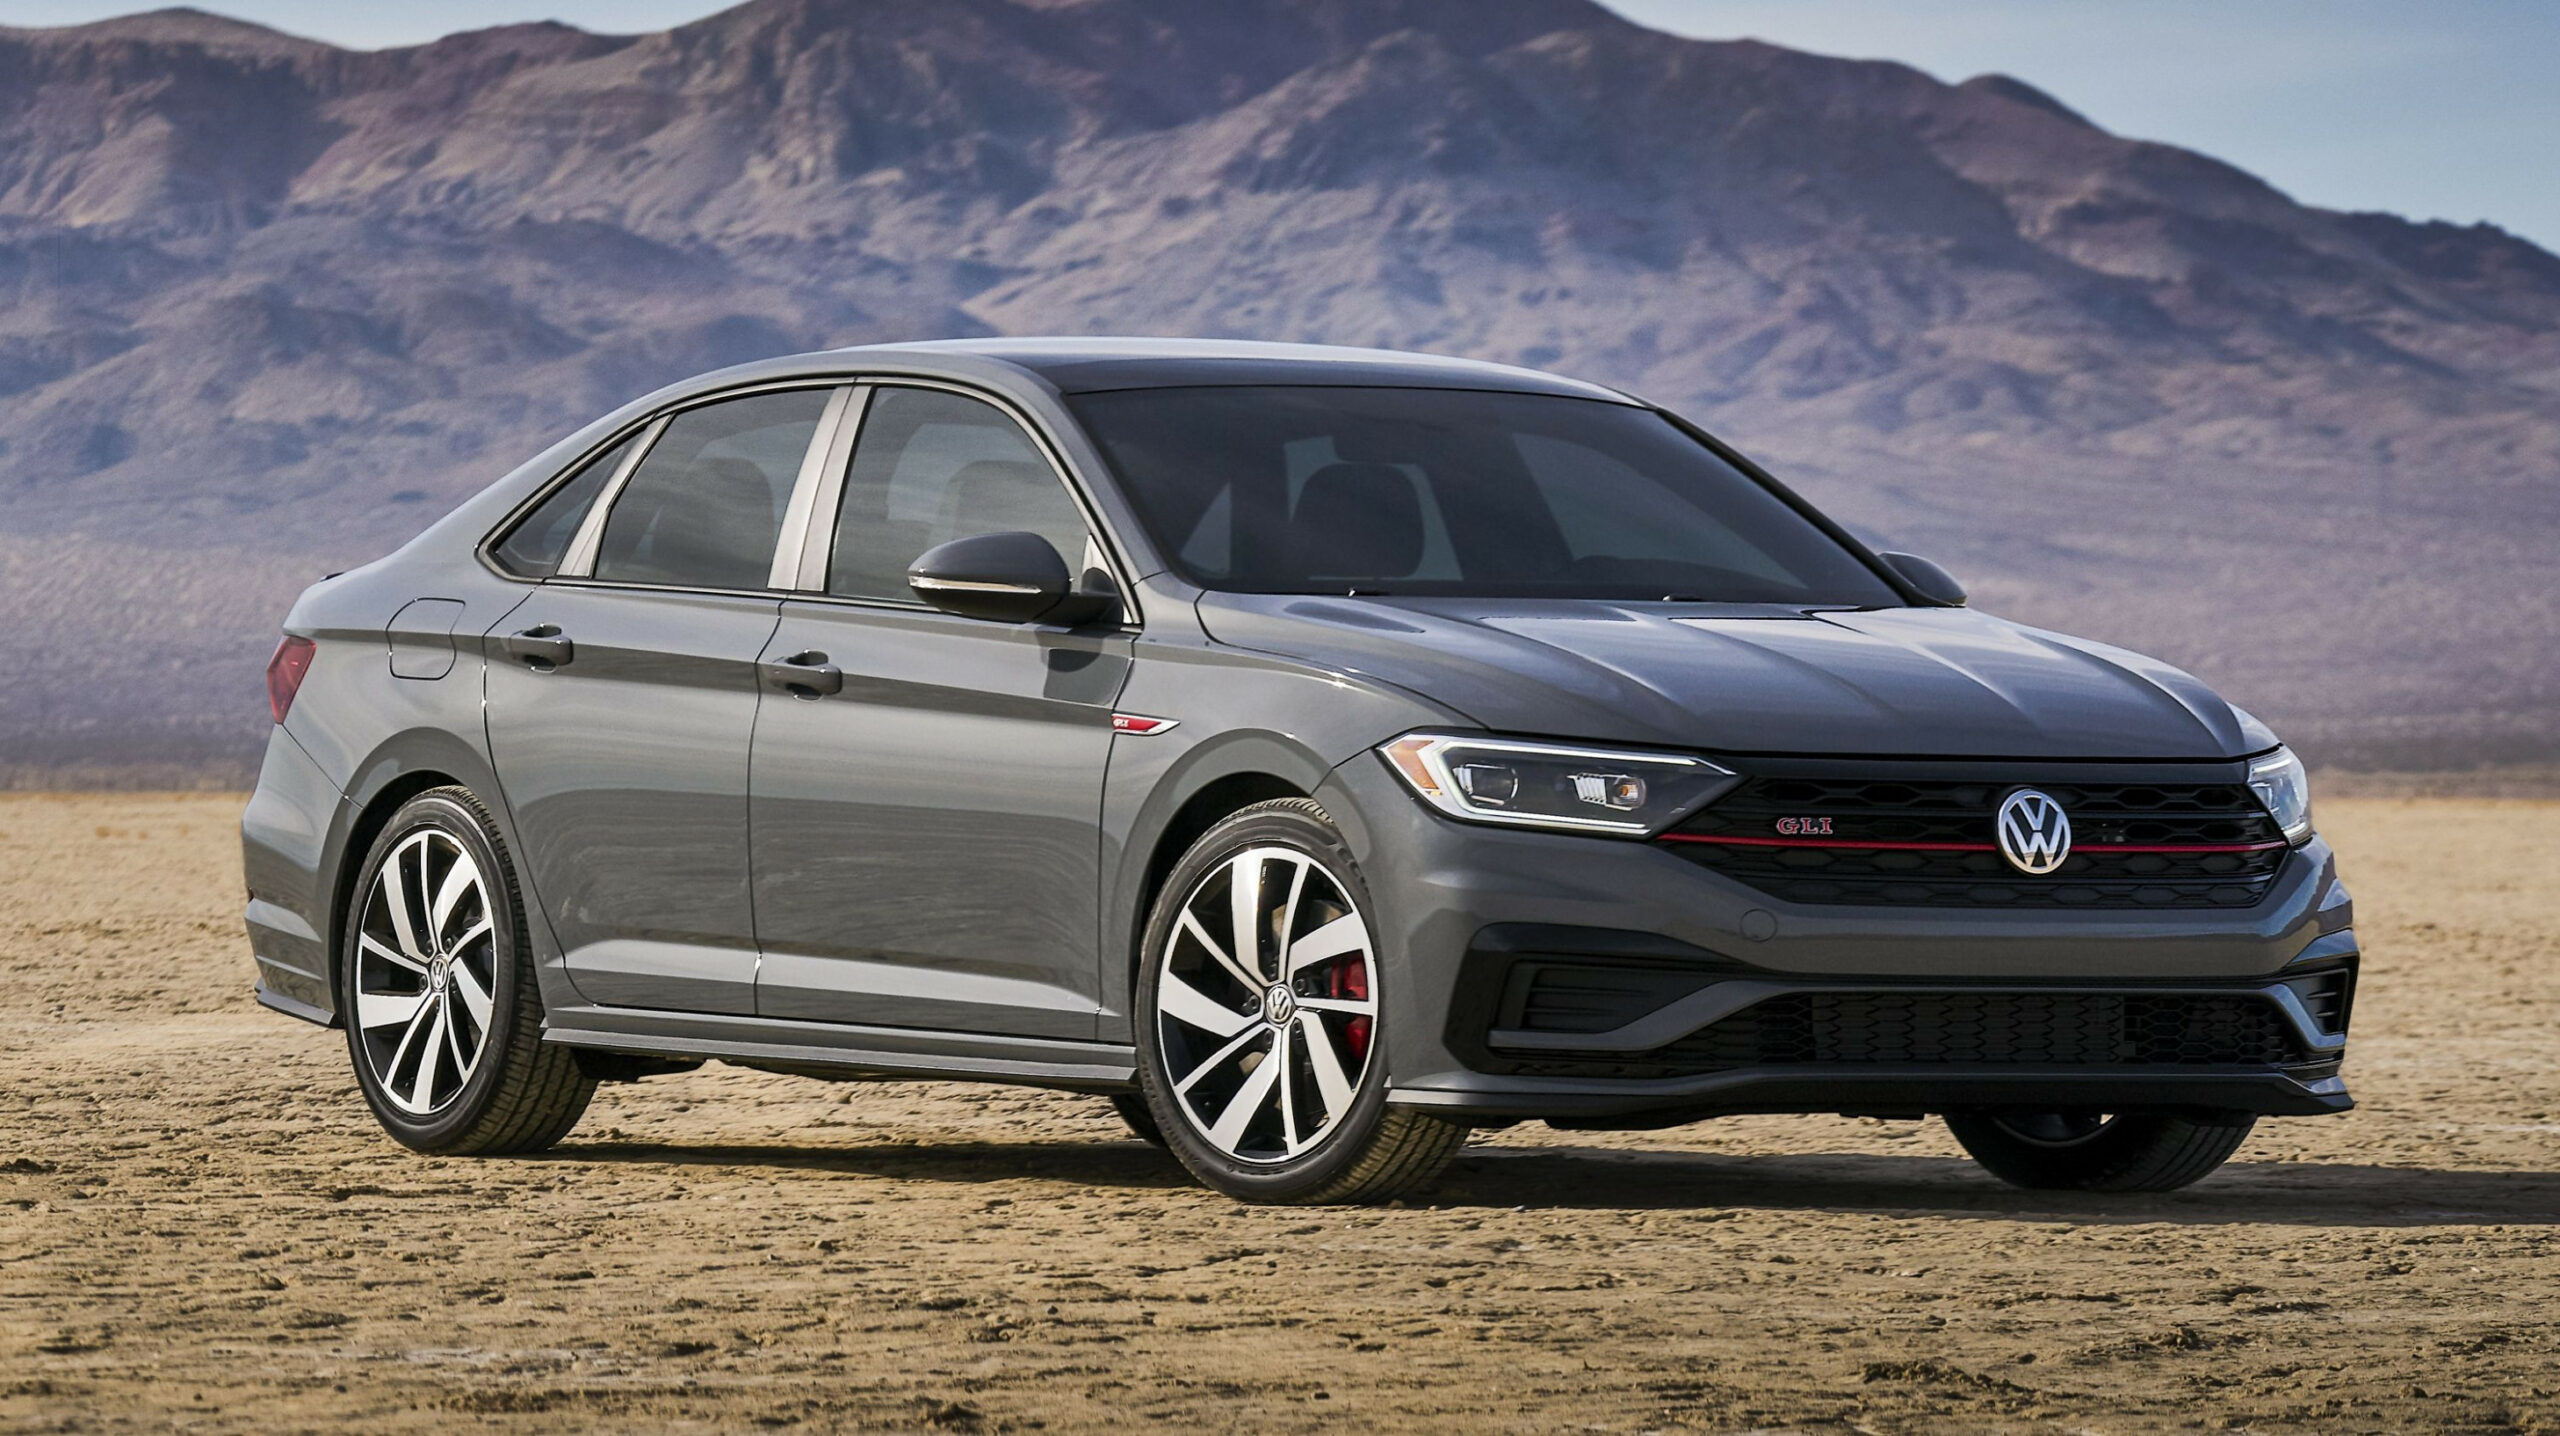 11 Reasons The 11 Volkswagen Jetta GLI Needs A GTI Badge ASAP ...